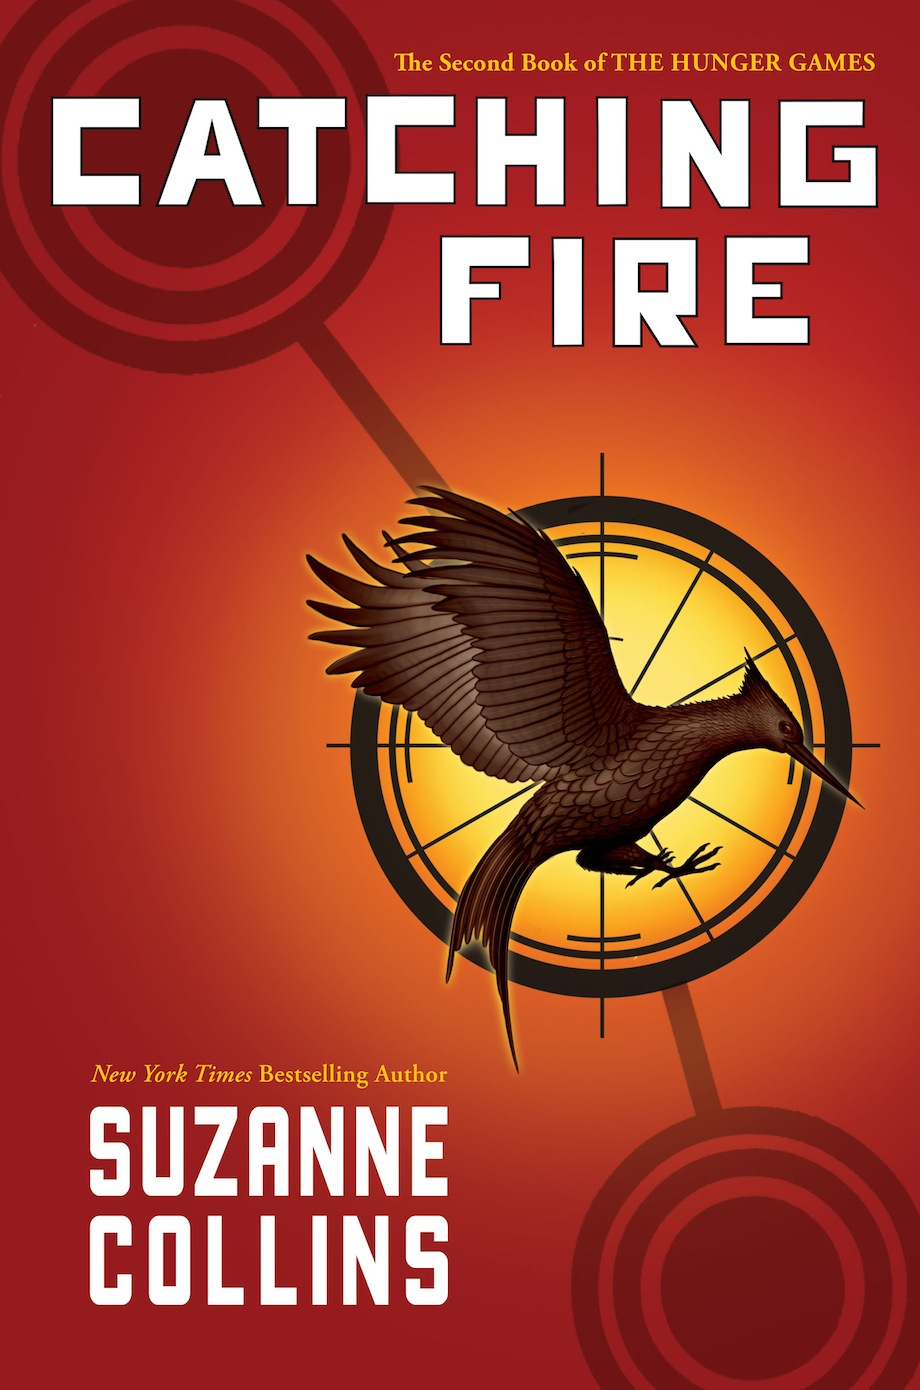 Catching Fire | The Hunger Games | Suzanne Collins (Food Reference List)